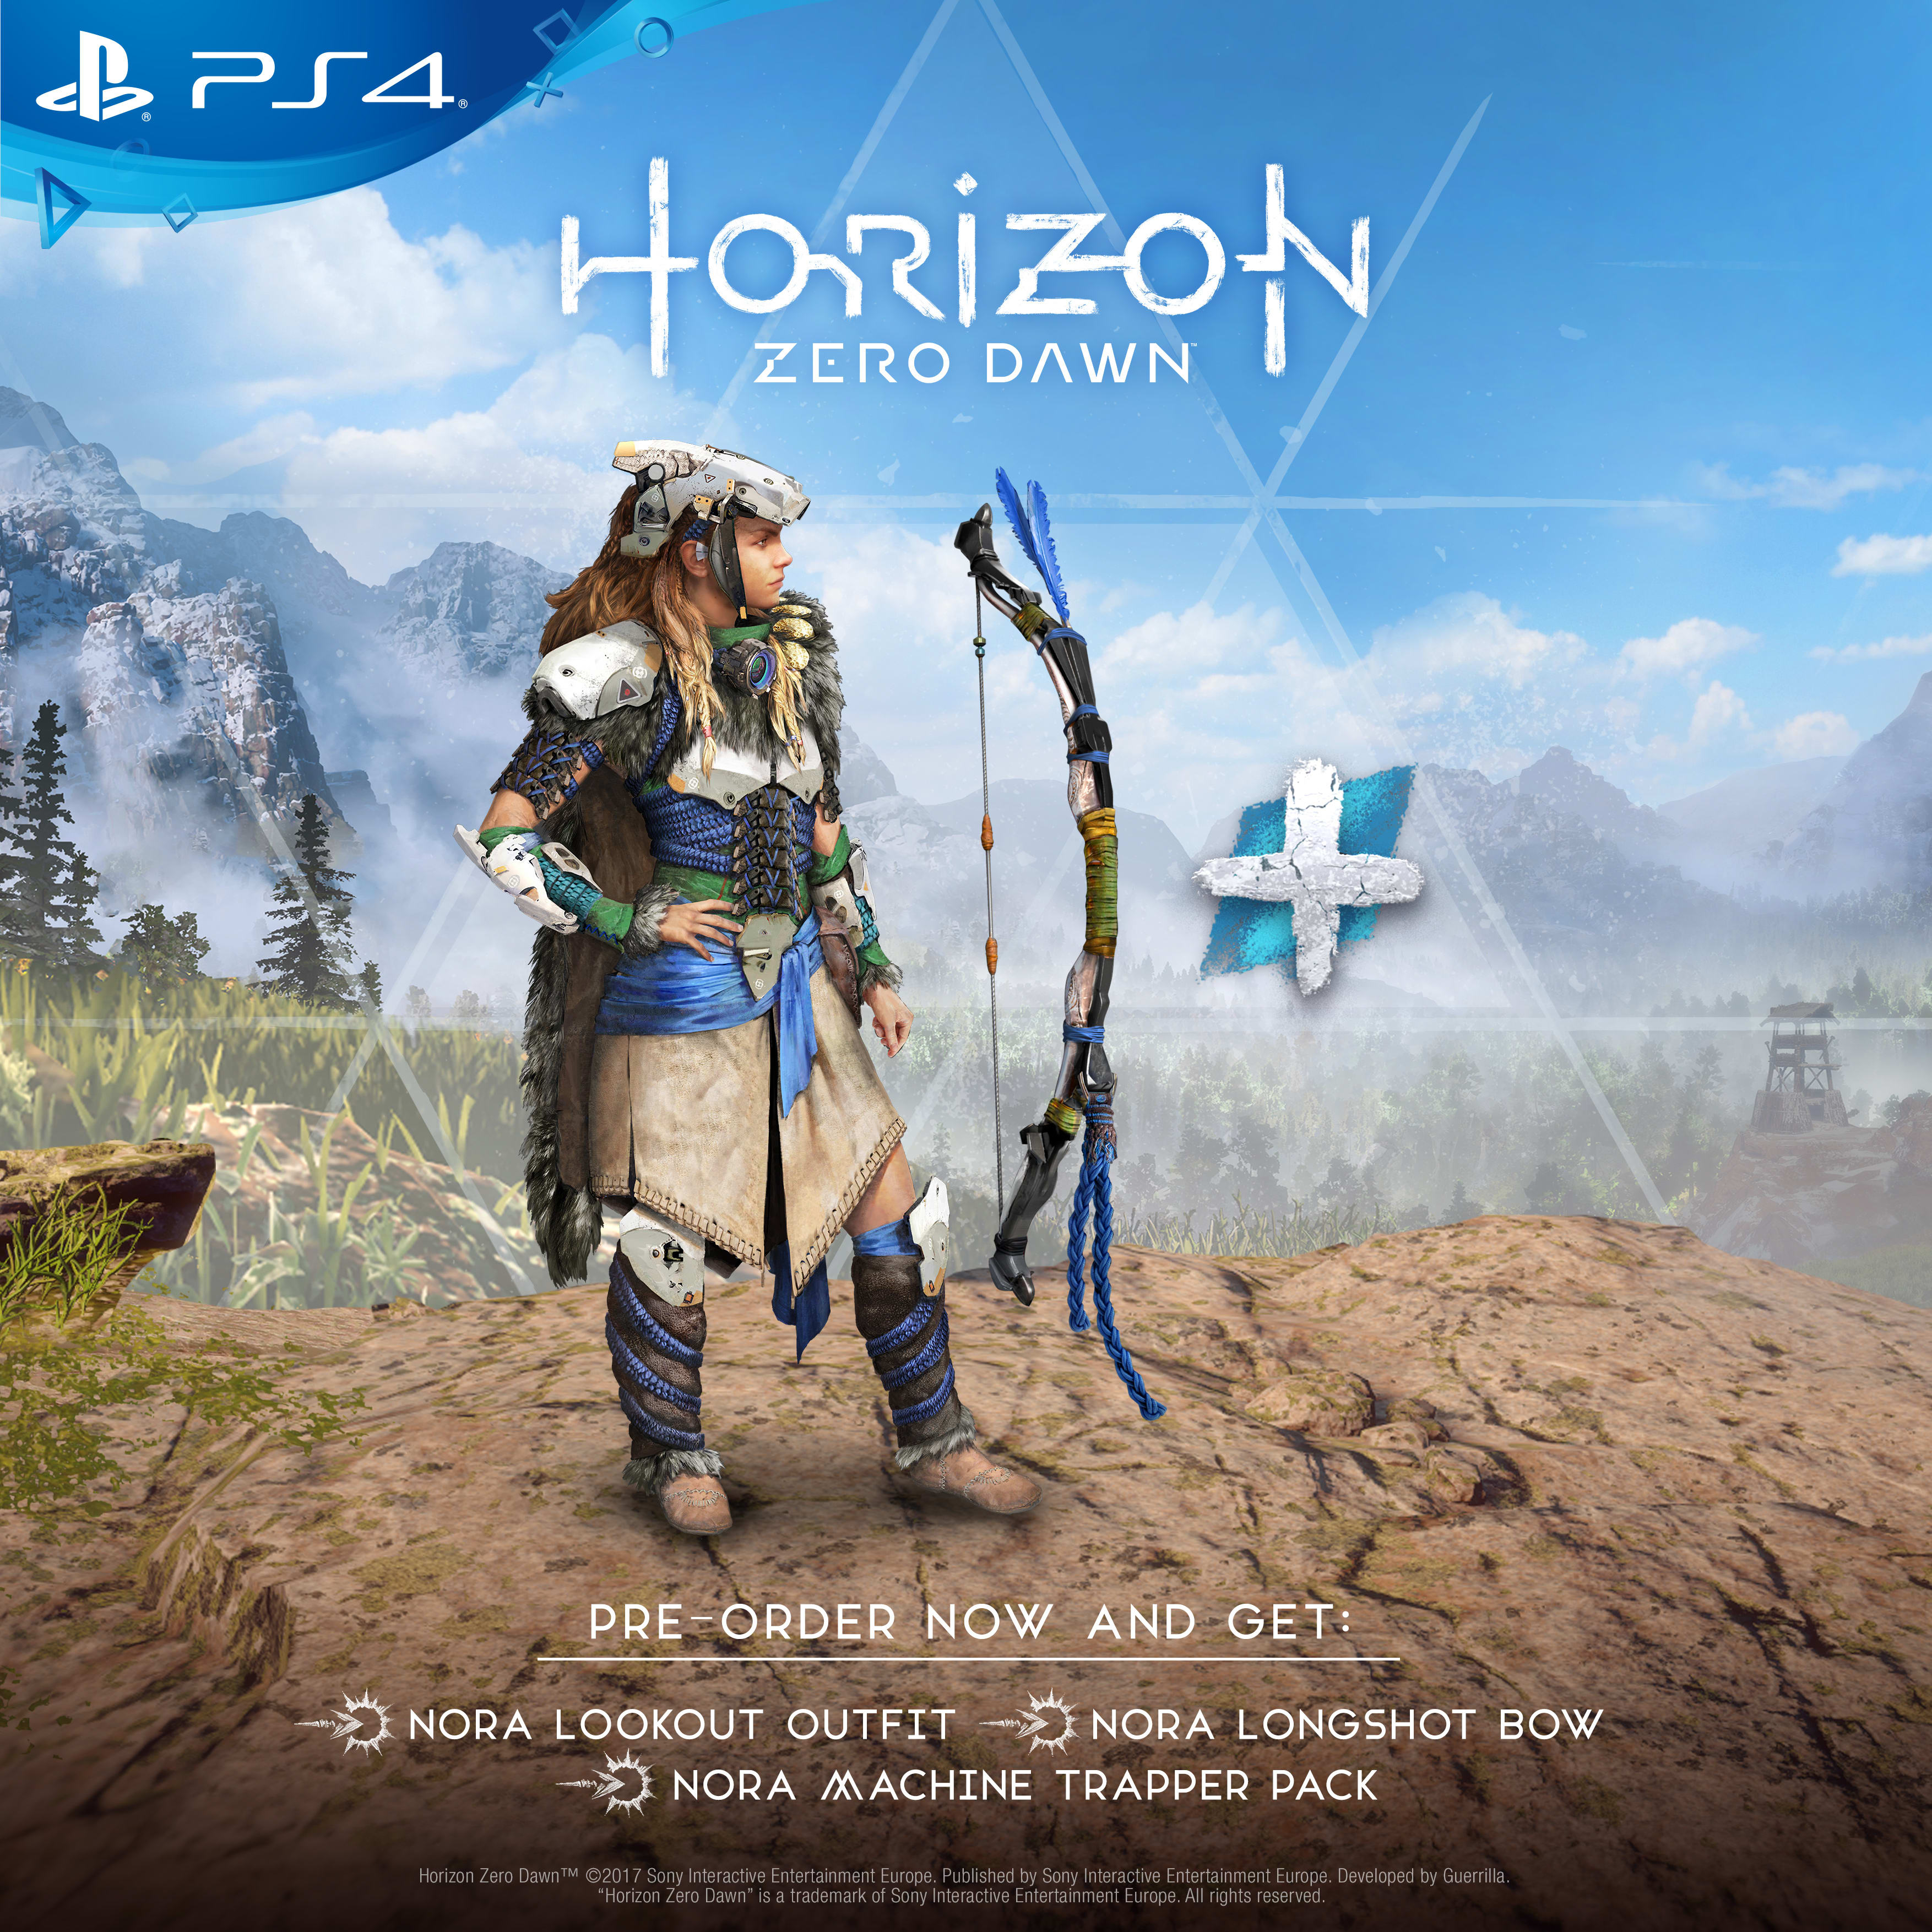 Pre-order Horizon Zero Dawn now to receive a bonus outfit and bow for Nora - Only at GAME!